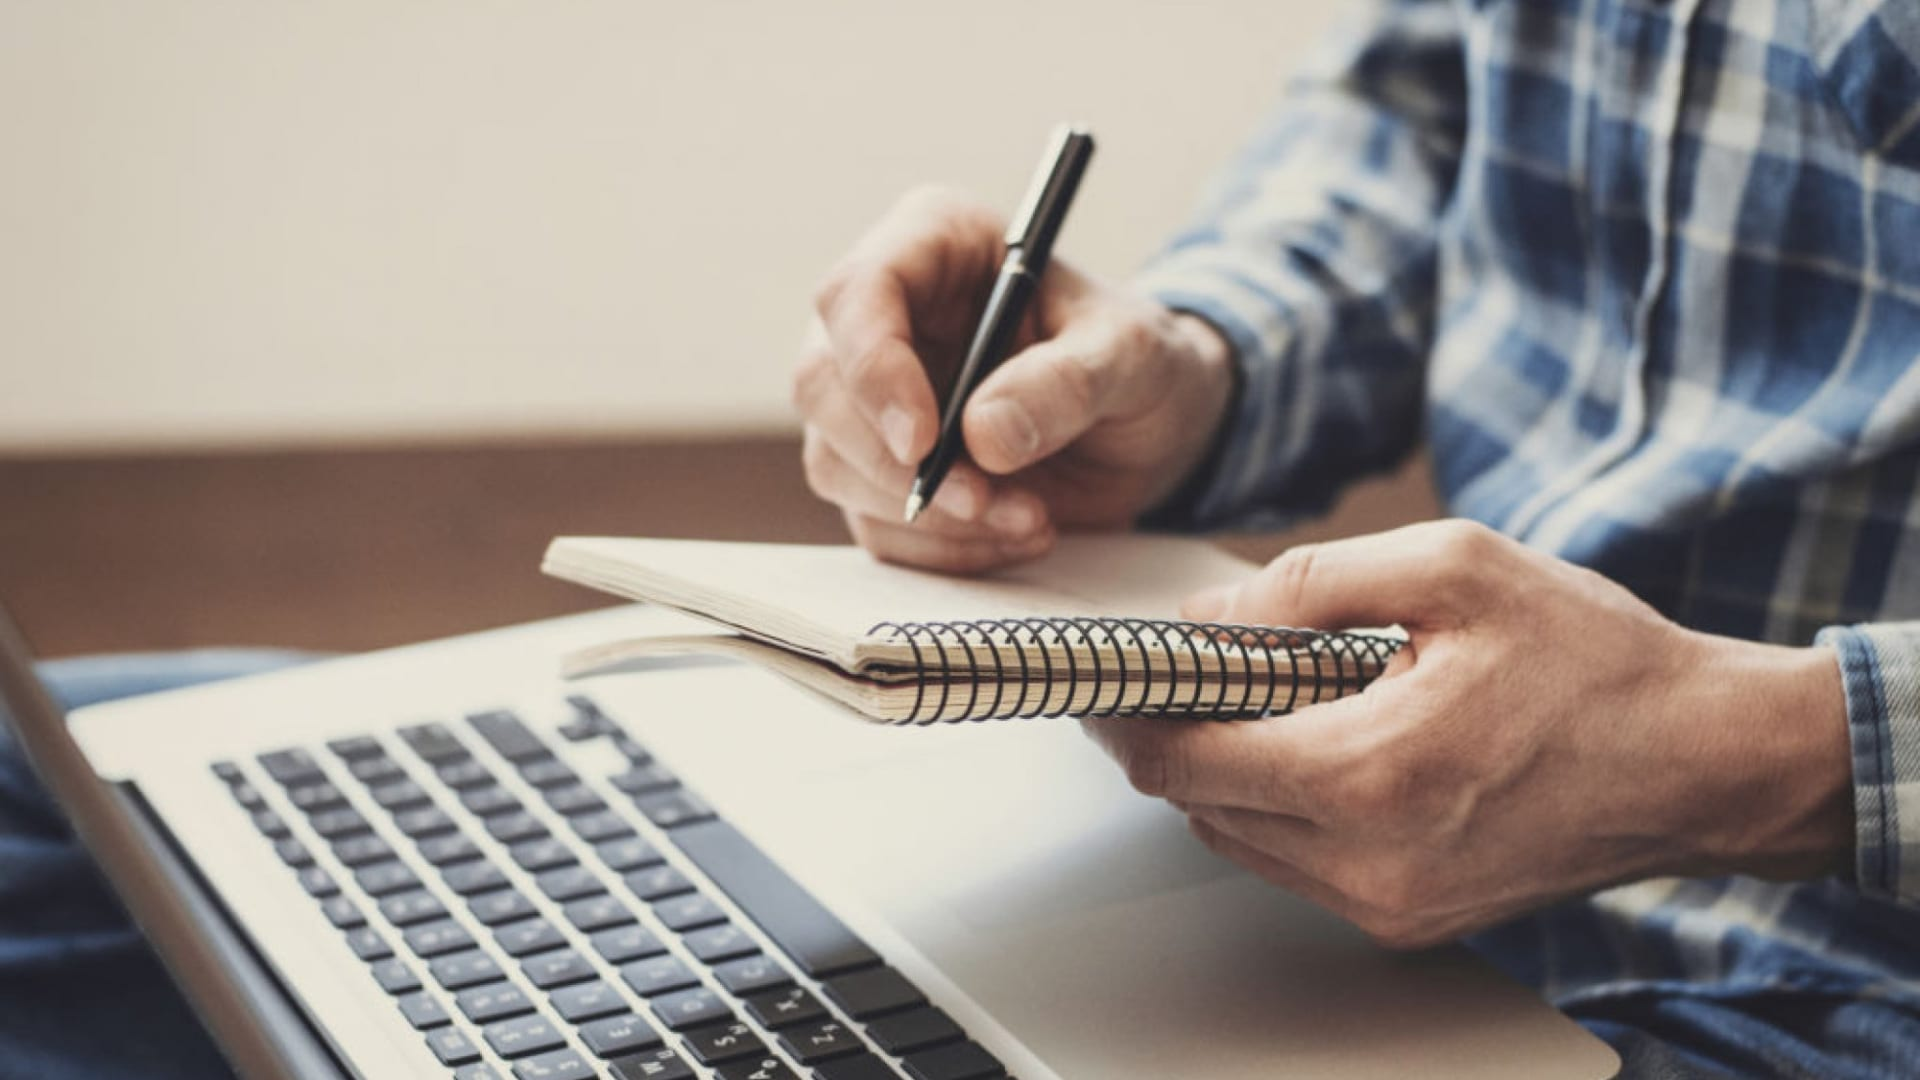 4 Lessons Every Entrepreneur Can Learn From a Journalist